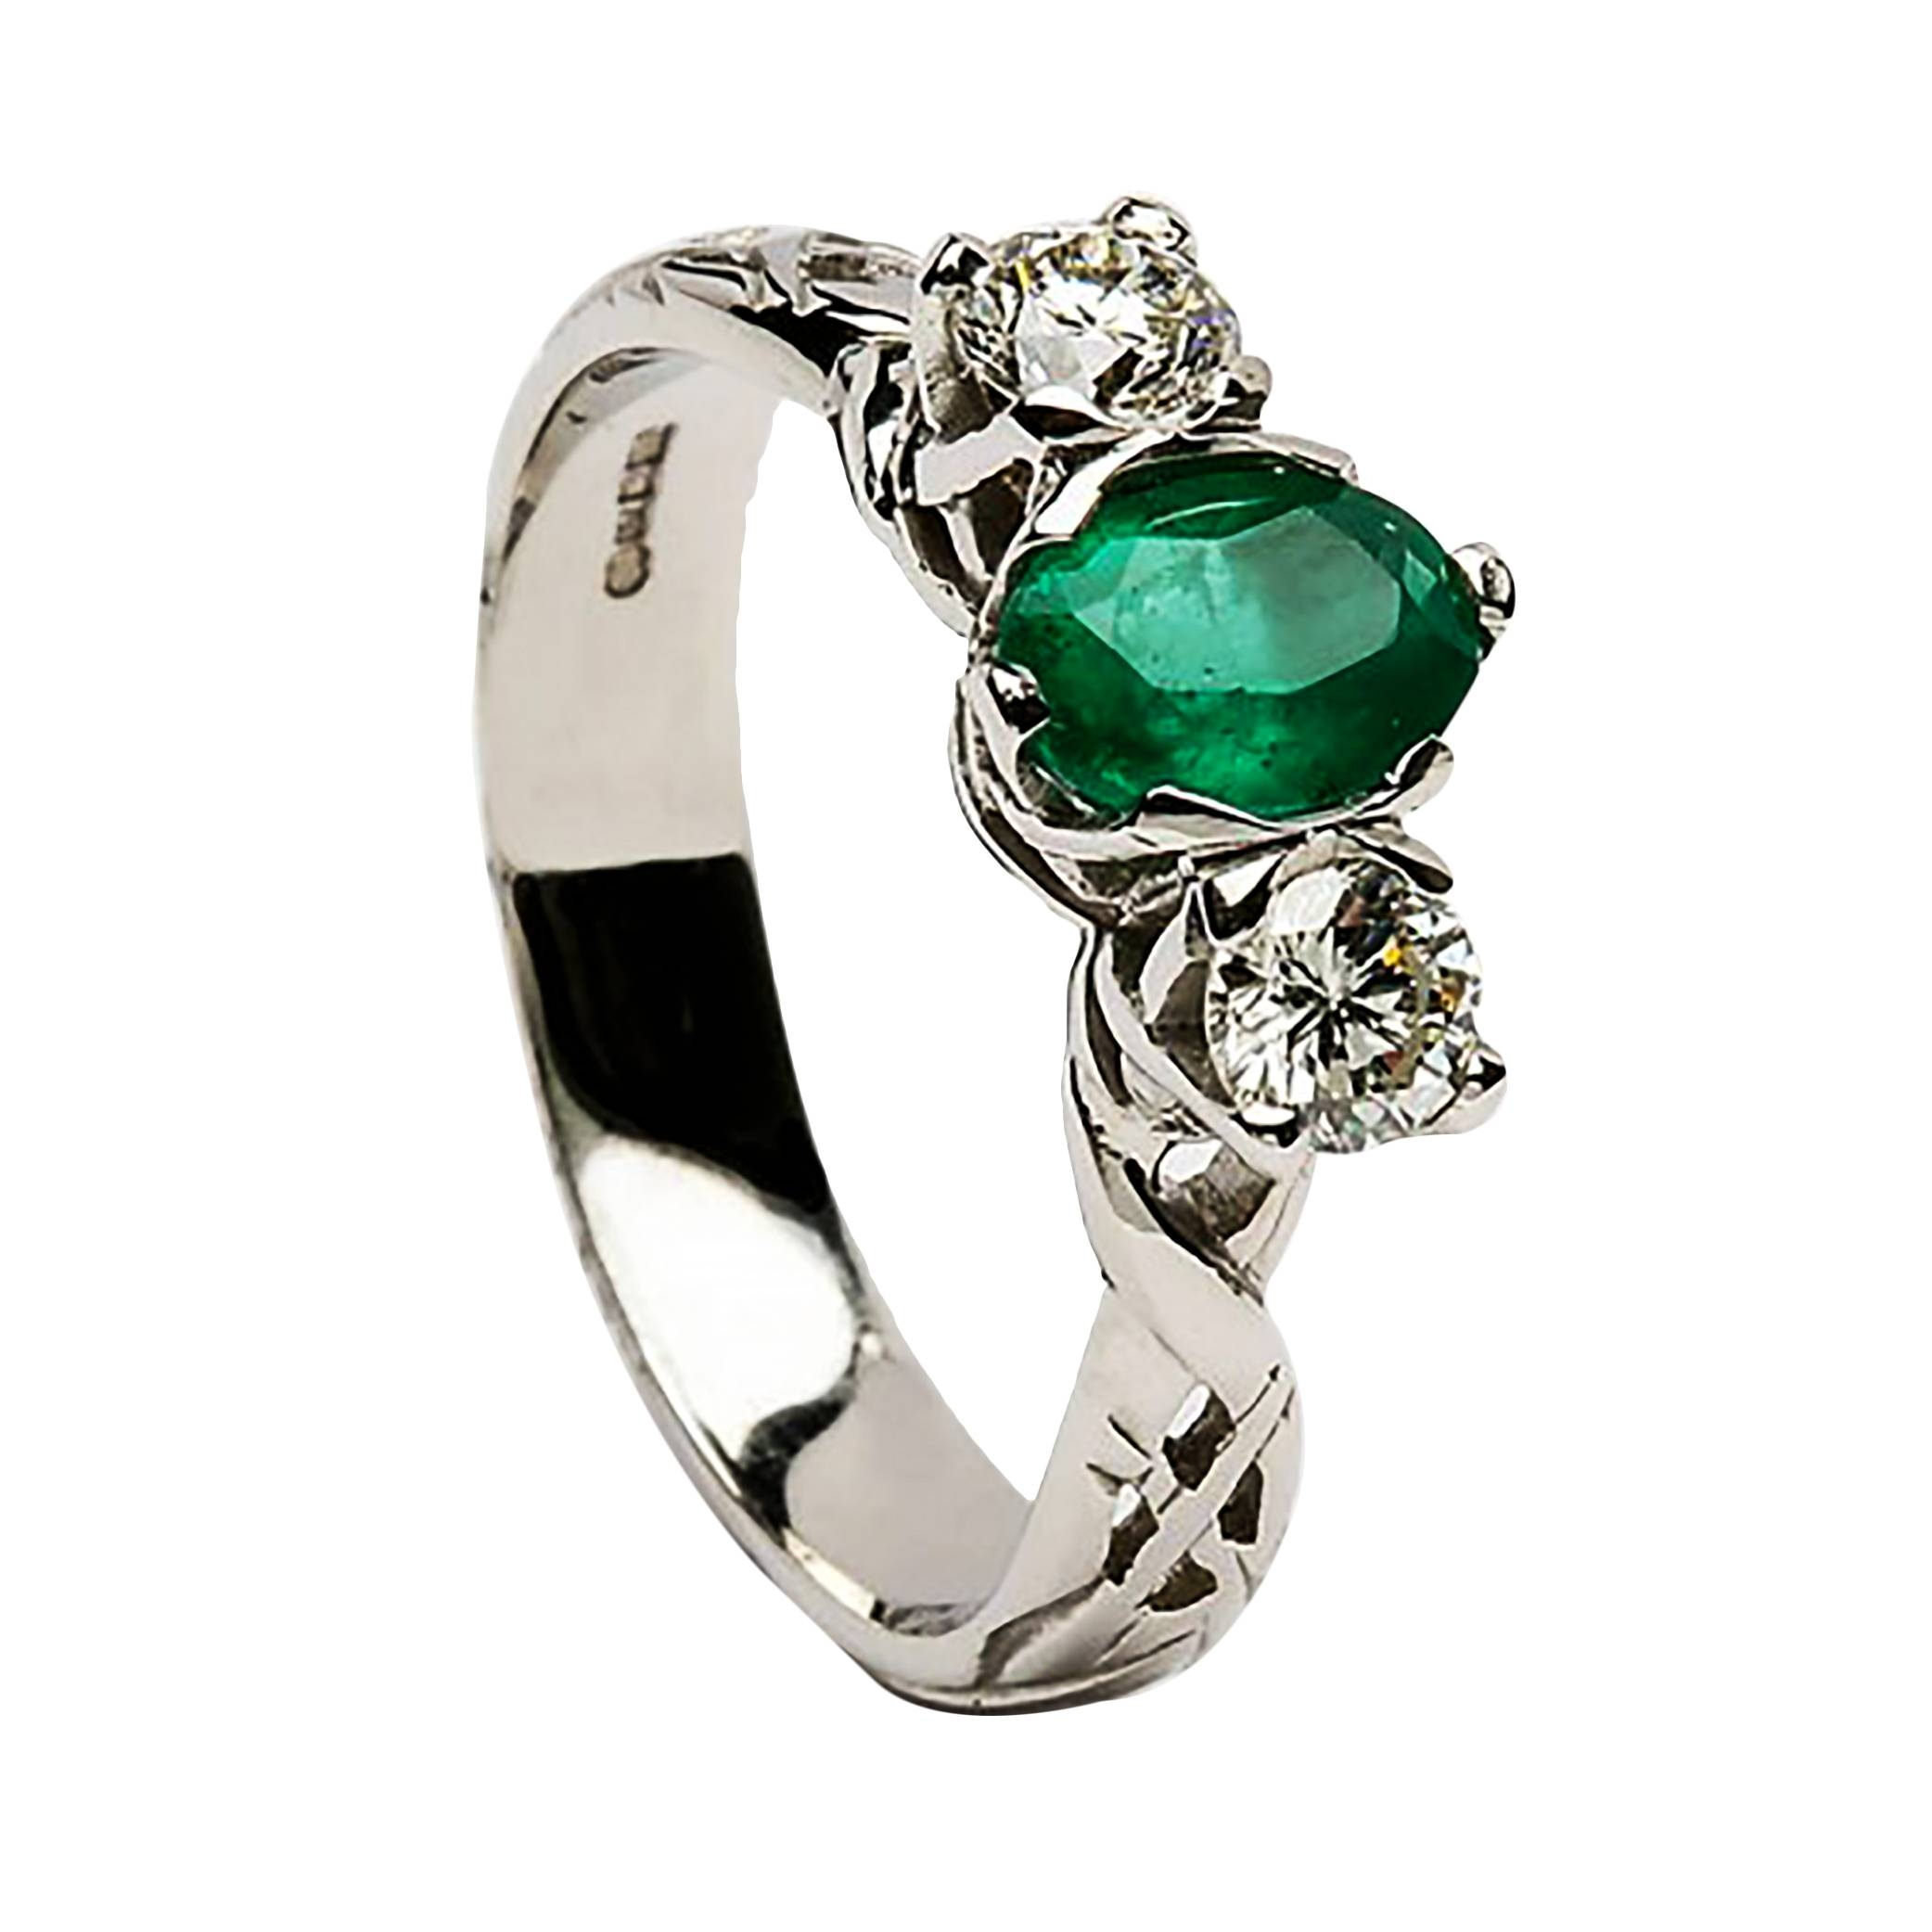 Irish Celtic Engagement Rings | Diamond Rings | Silver Rings Pertaining To Celtic Emerald Engagement Rings (View 5 of 15)